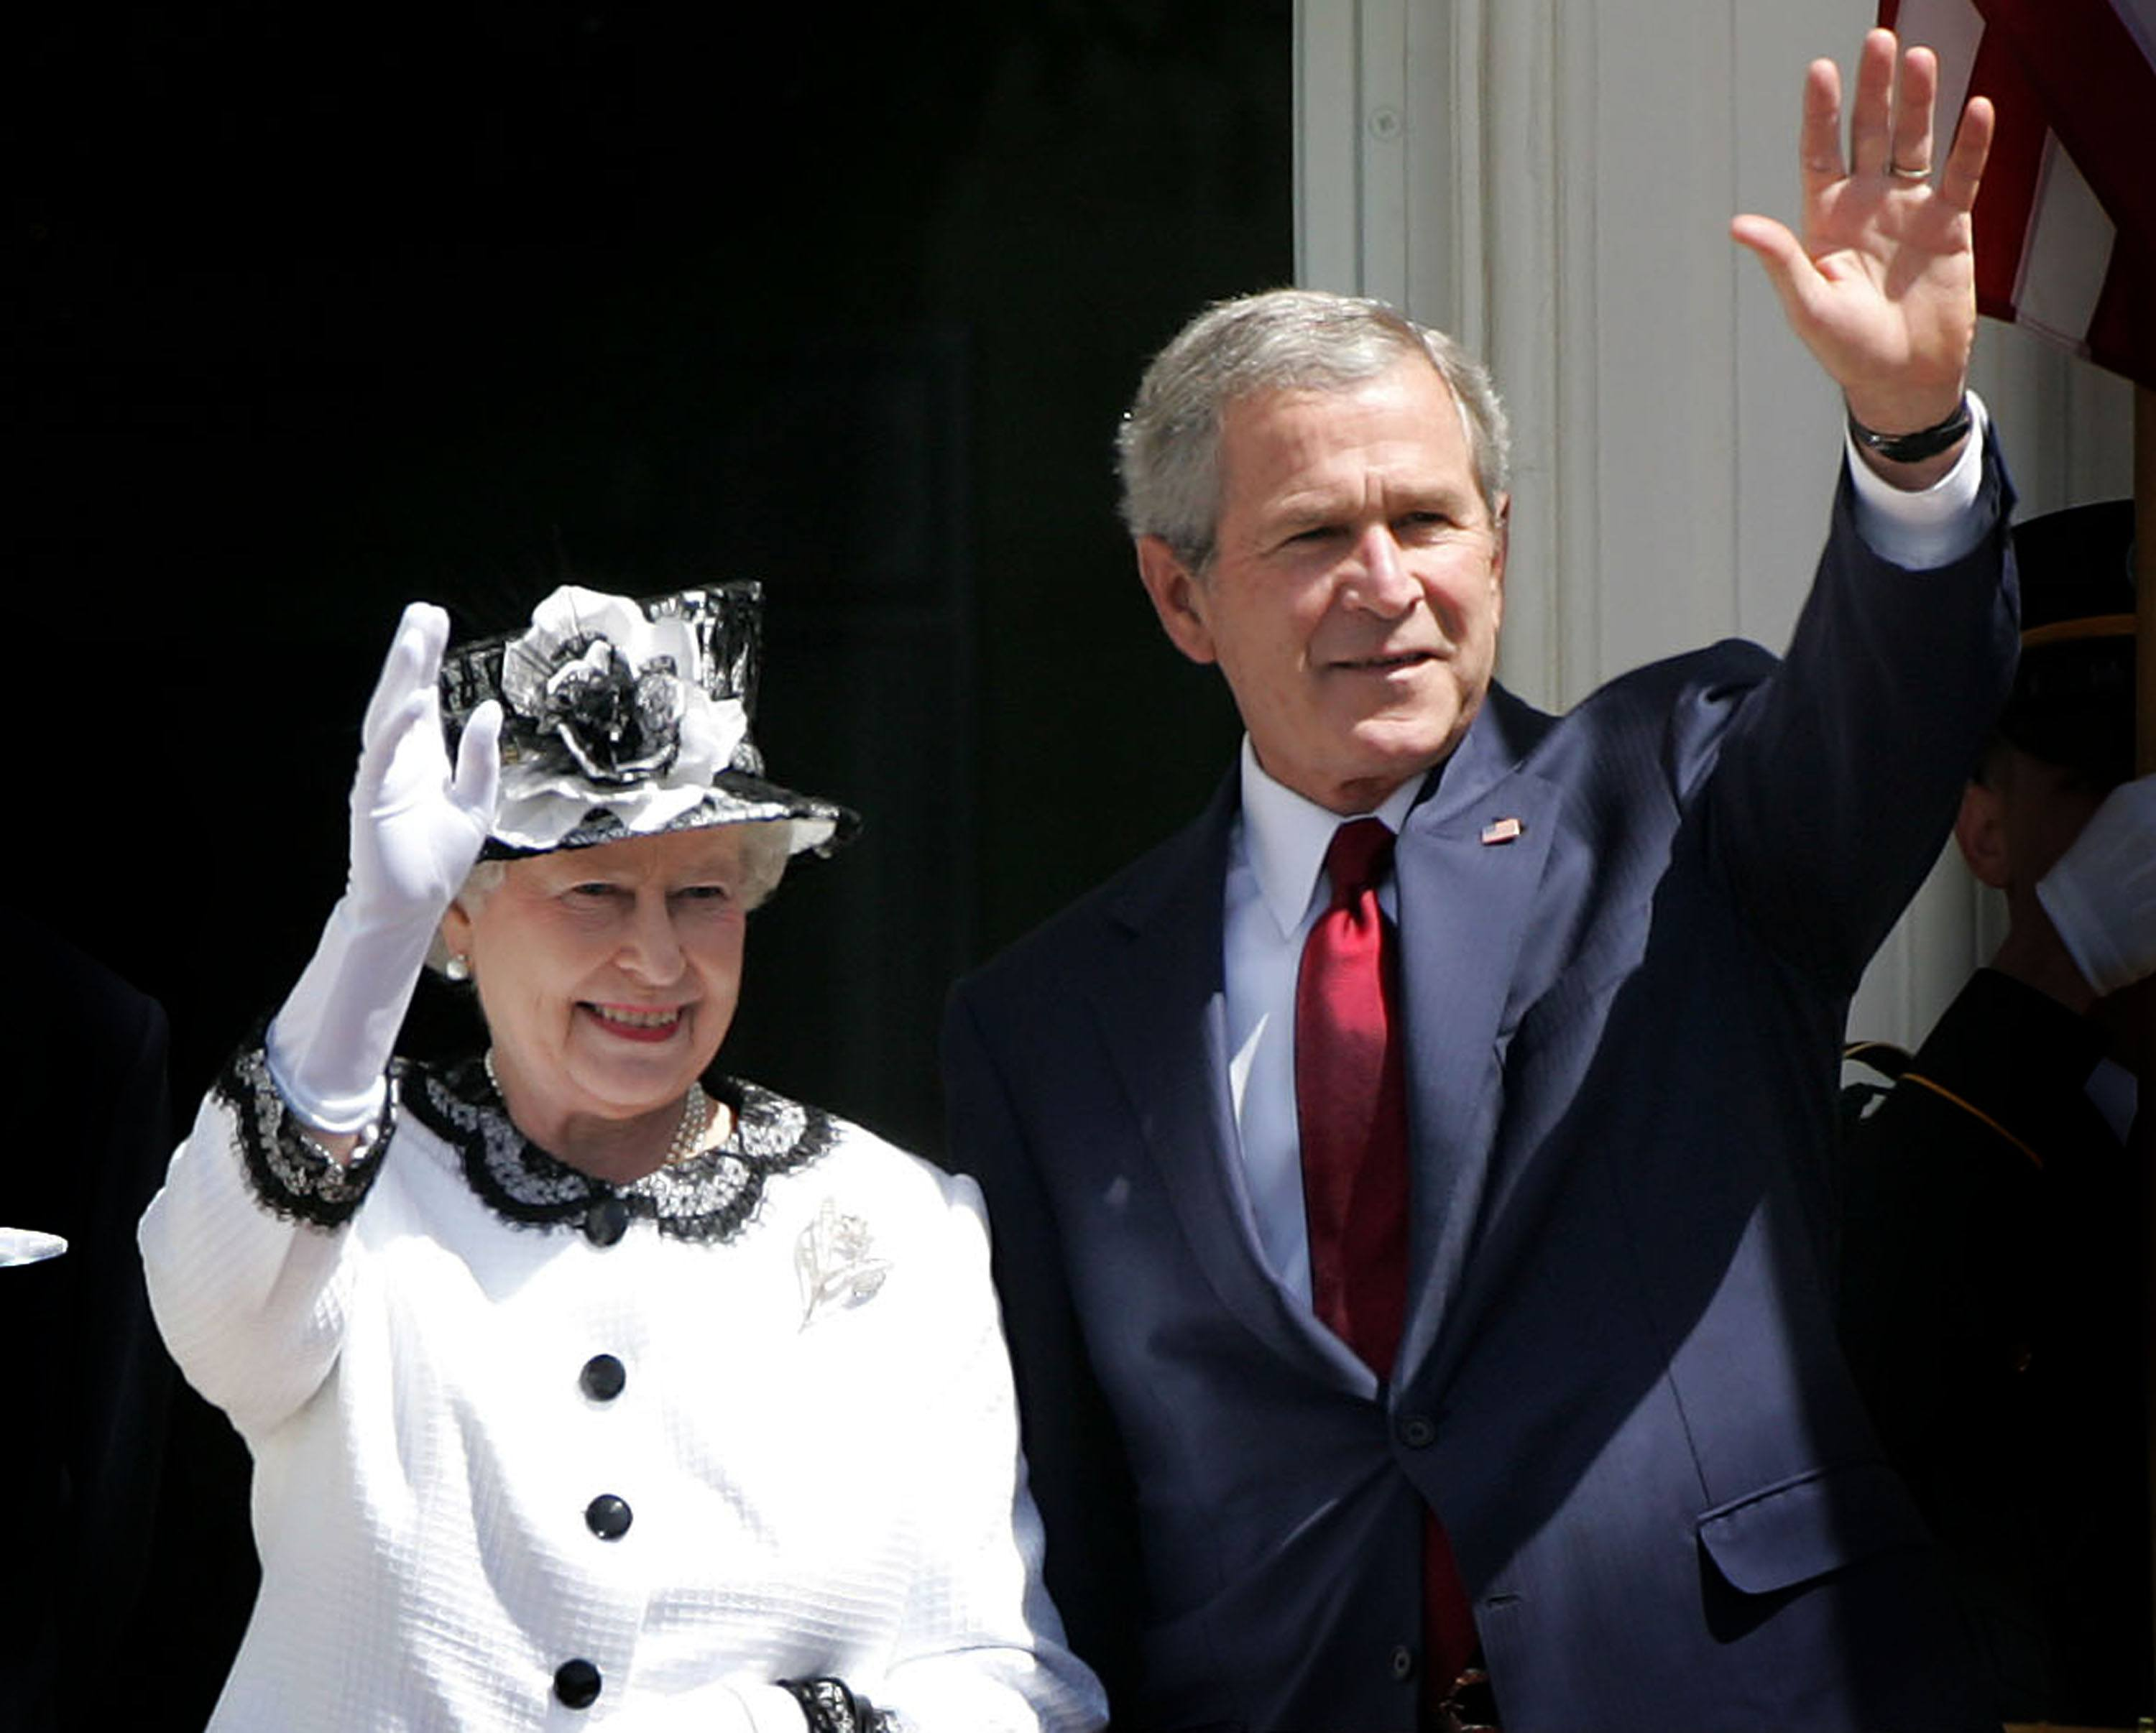 Queen Elizabeth and George W Bush